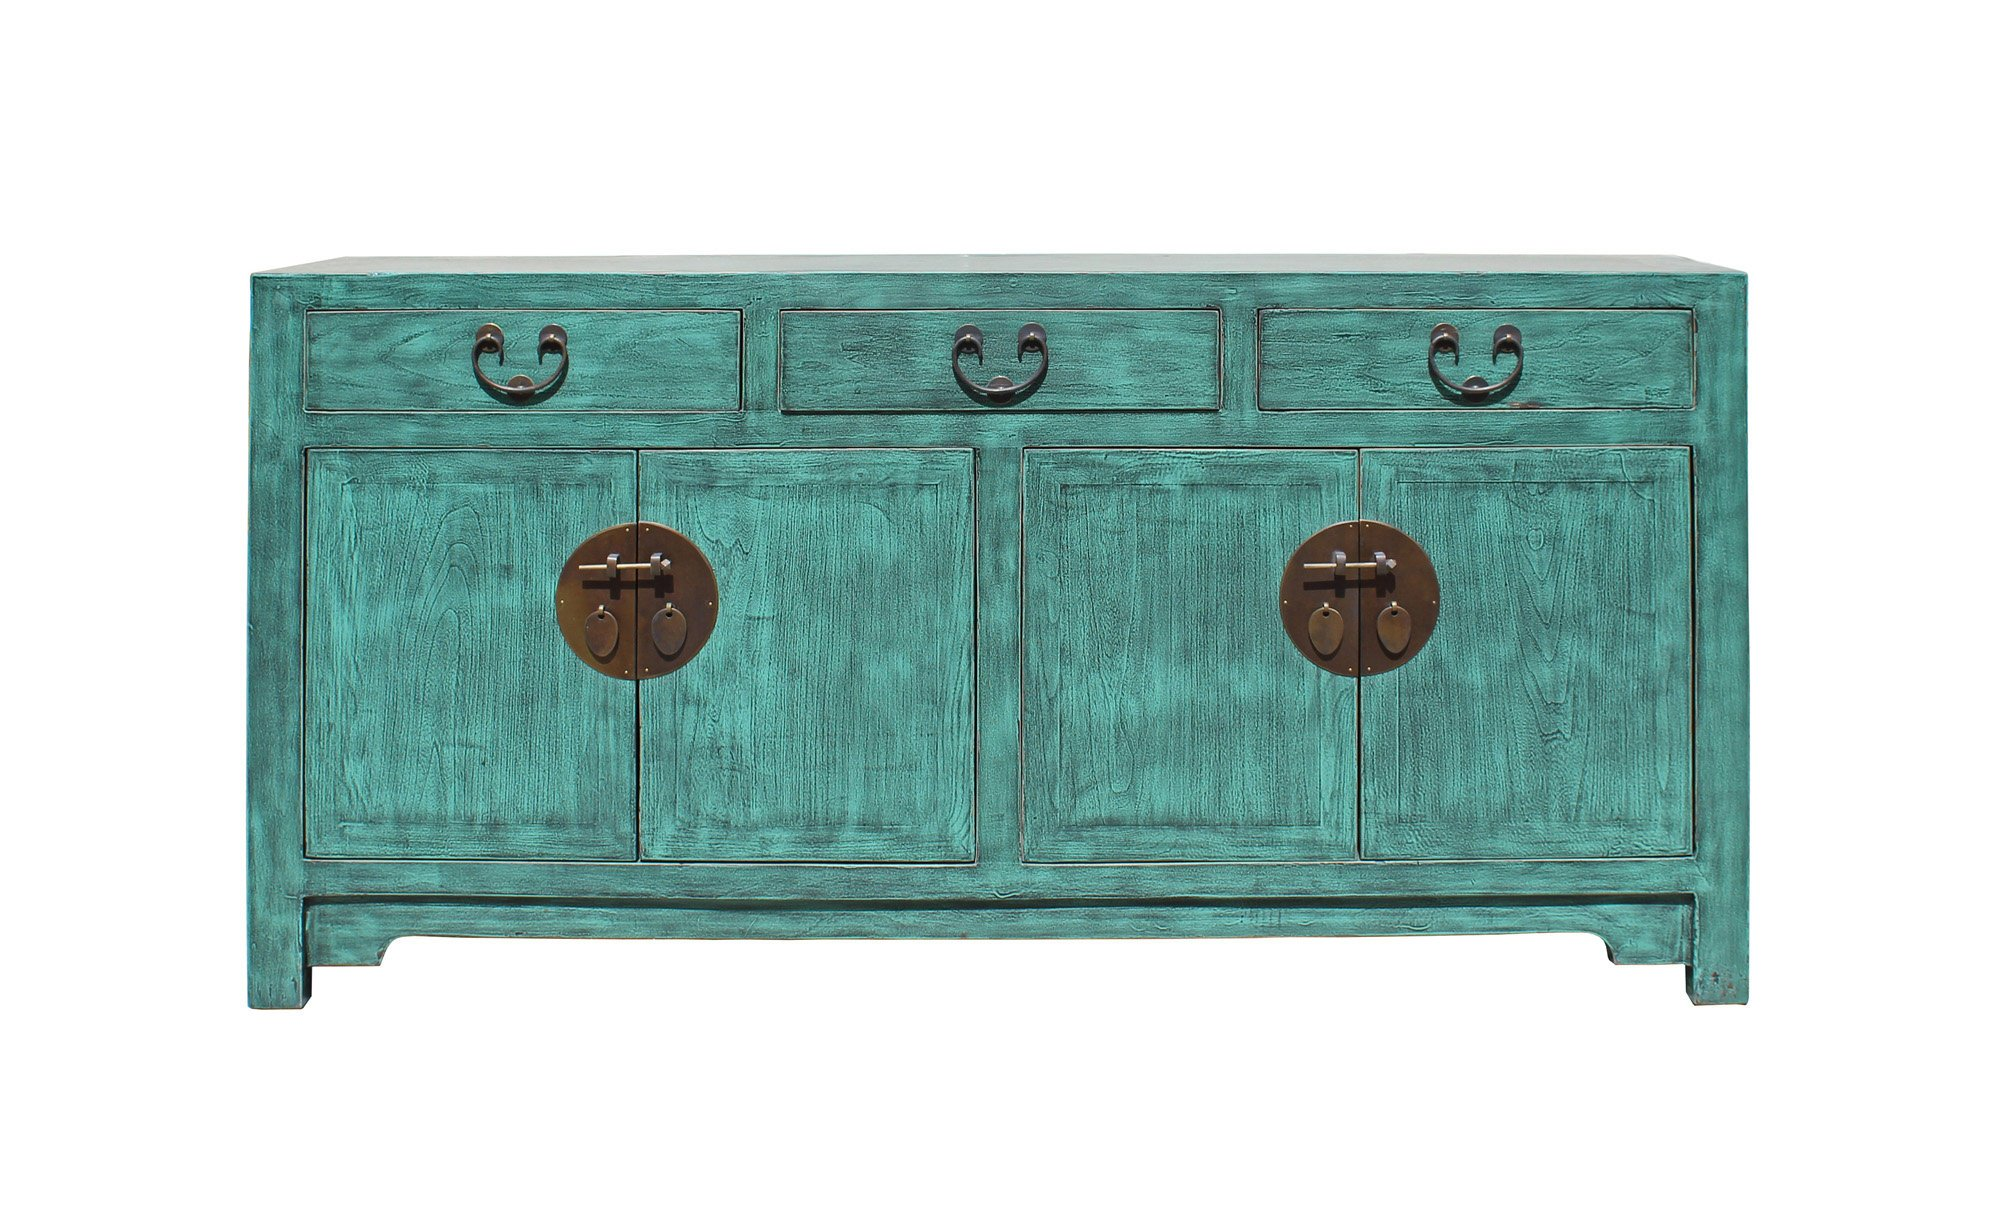 distressed teal blue wood pattern sideboard console table etsy fullxfull accent modern living room coffee farmhouse sliding door inch furniture legs nautical pendant with shelves